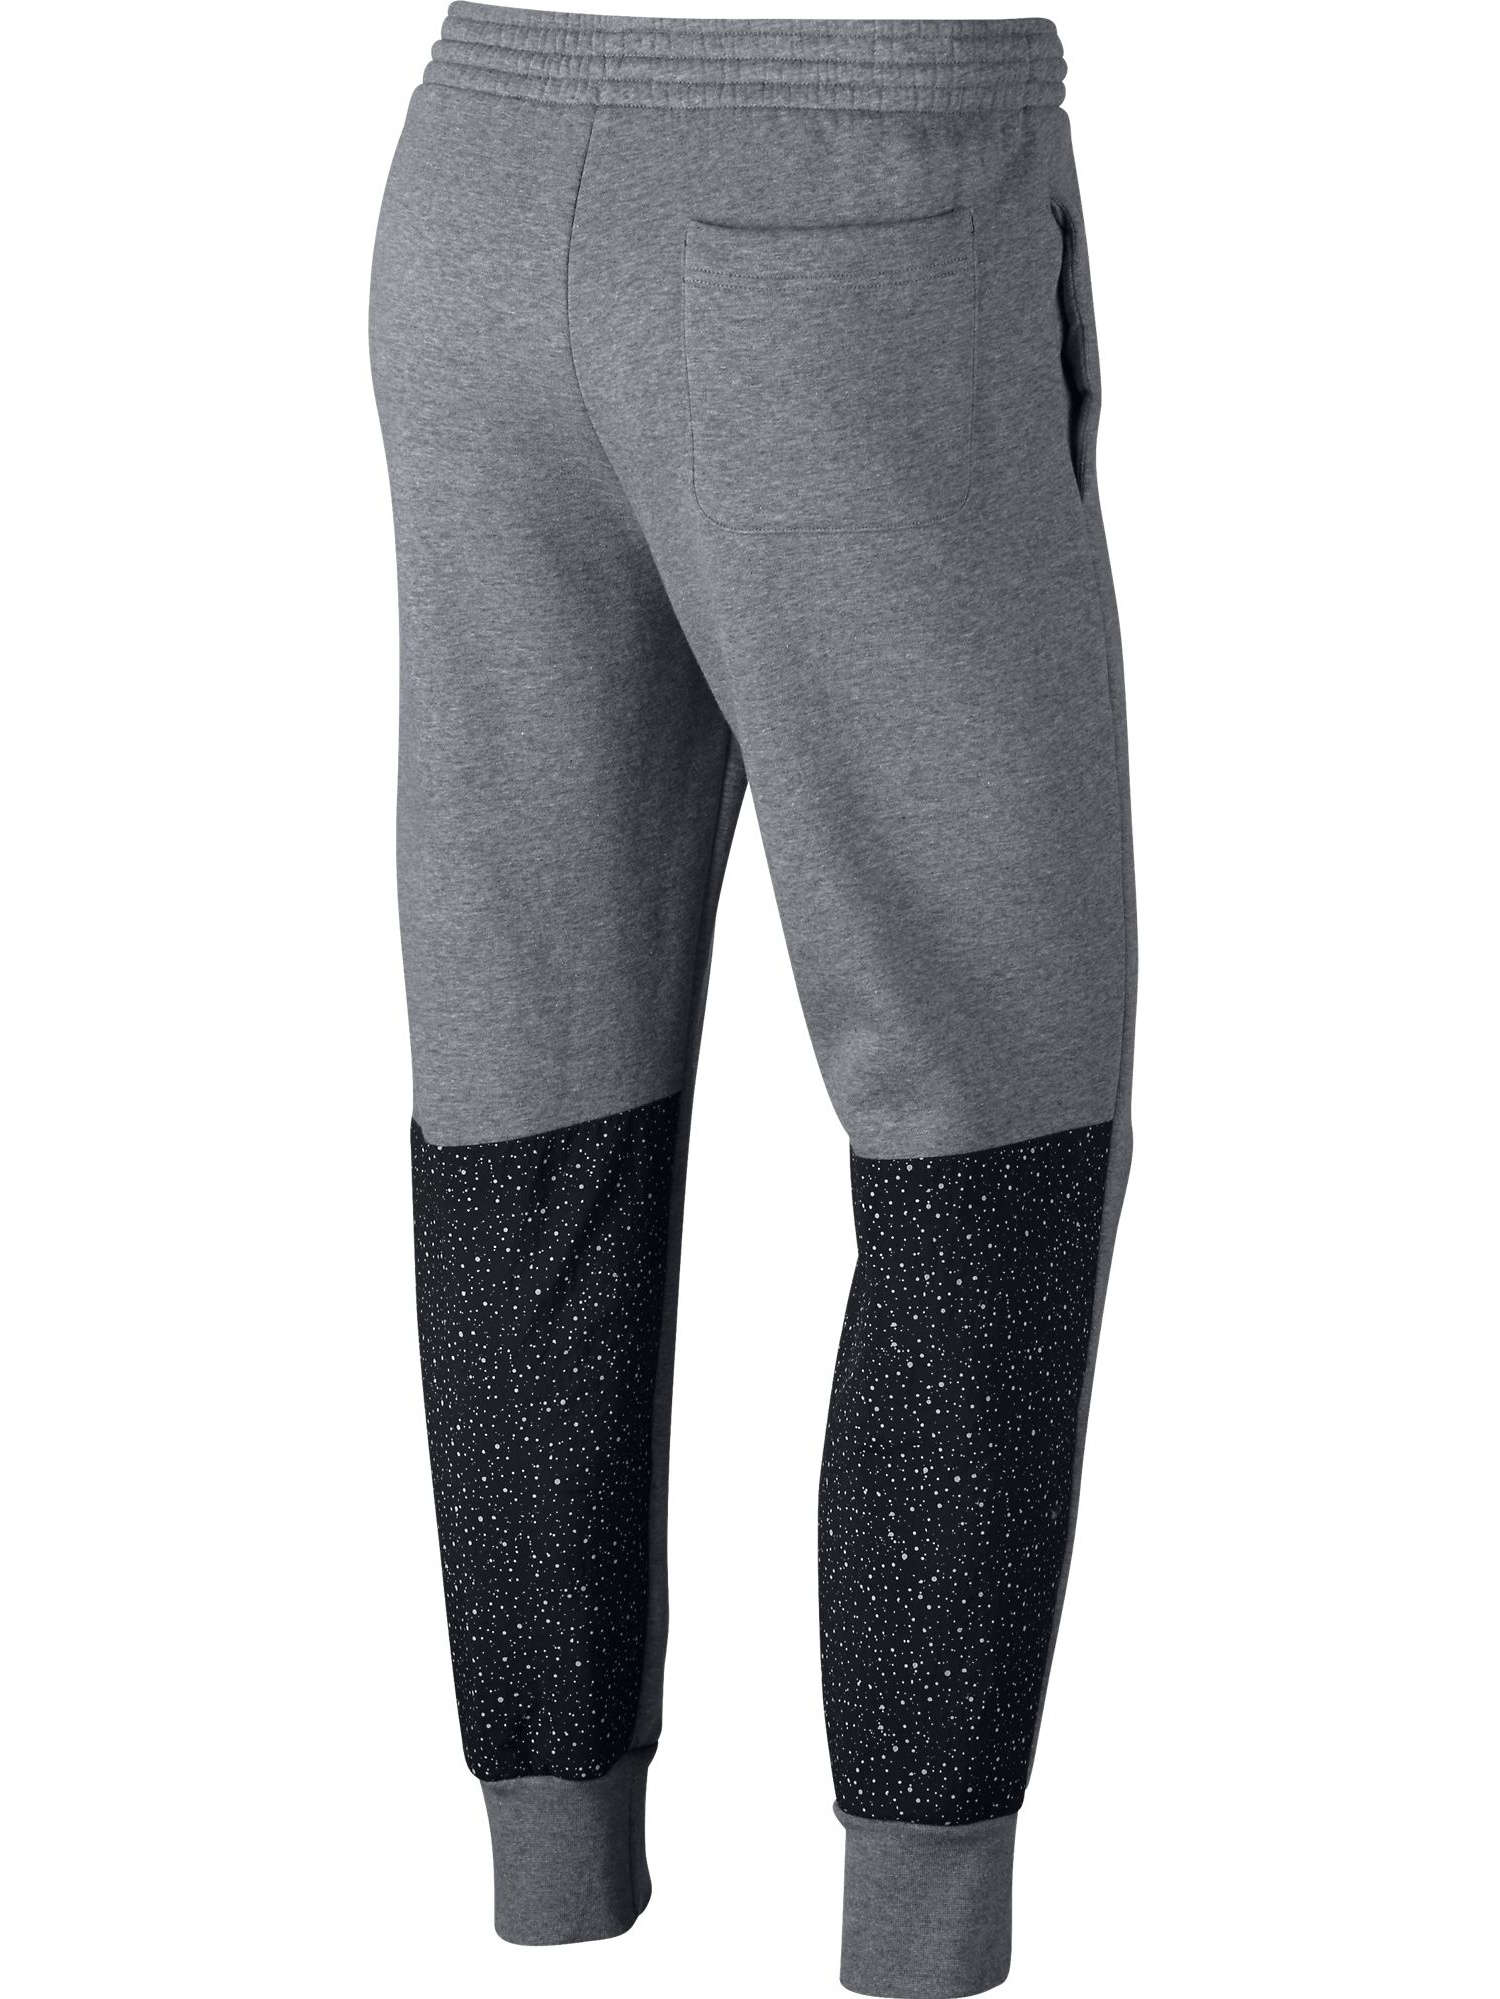 7a48c872af58 ... Nike Pants Tights  Jordan - Jordan Sportswear Flight Fleece Cement Men s  Pants Carbon Heather Black 884203-091 . ...